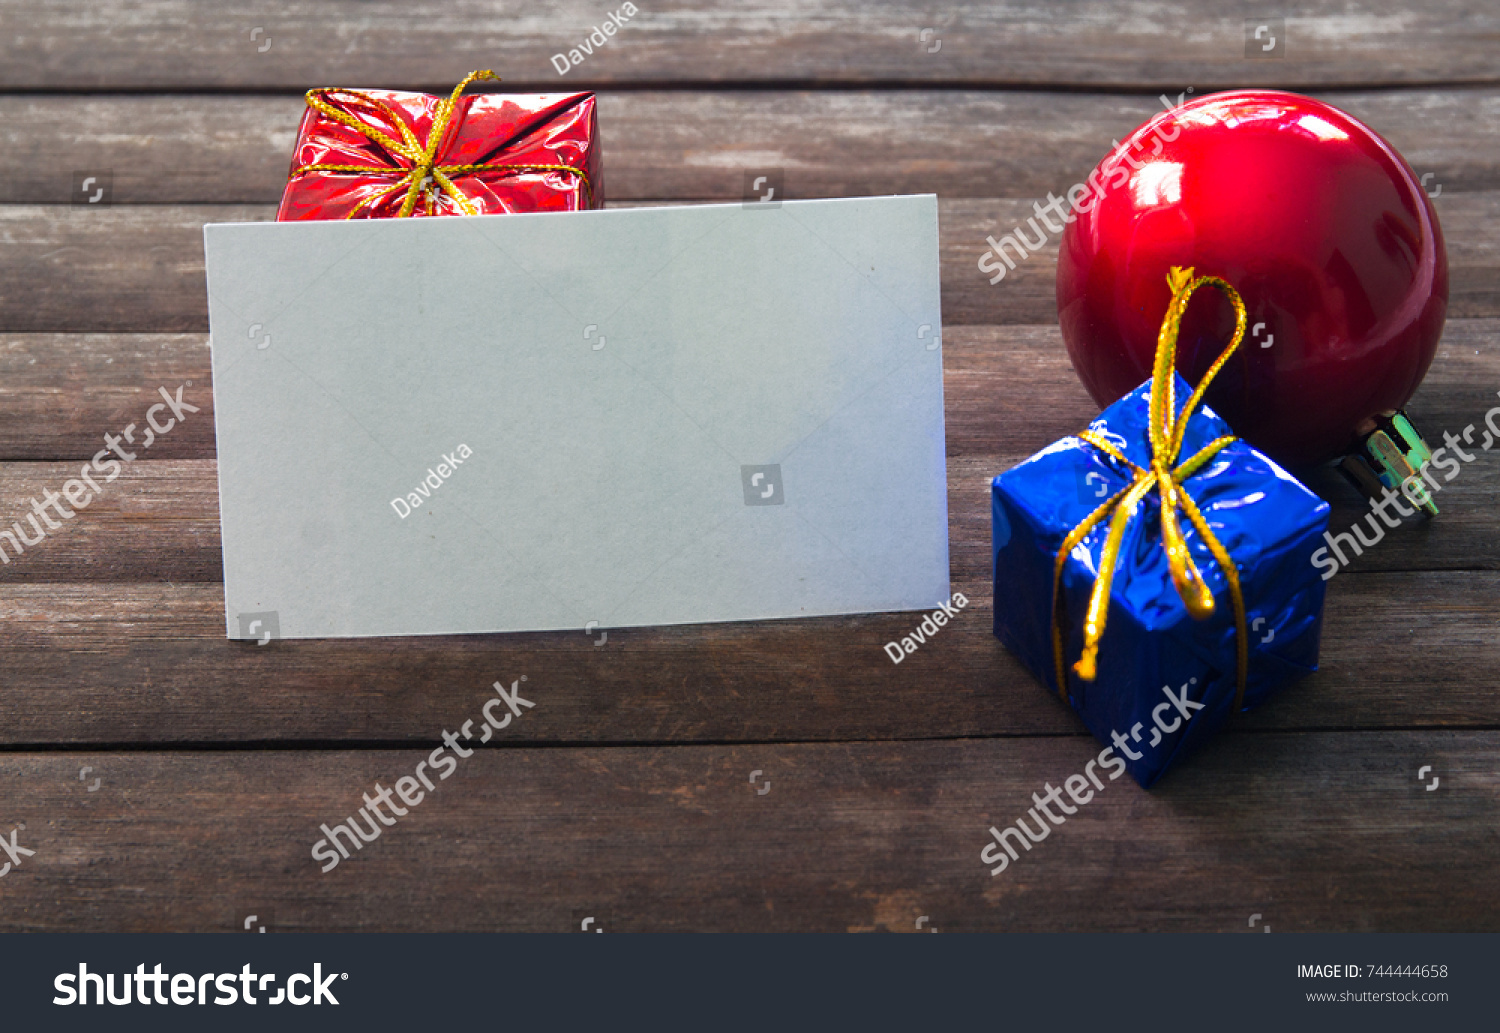 Blank business card christmas decor on stock photo 744444658 blank business card in christmas decor on wooden background christmas card mockup vintage christmas reheart Images